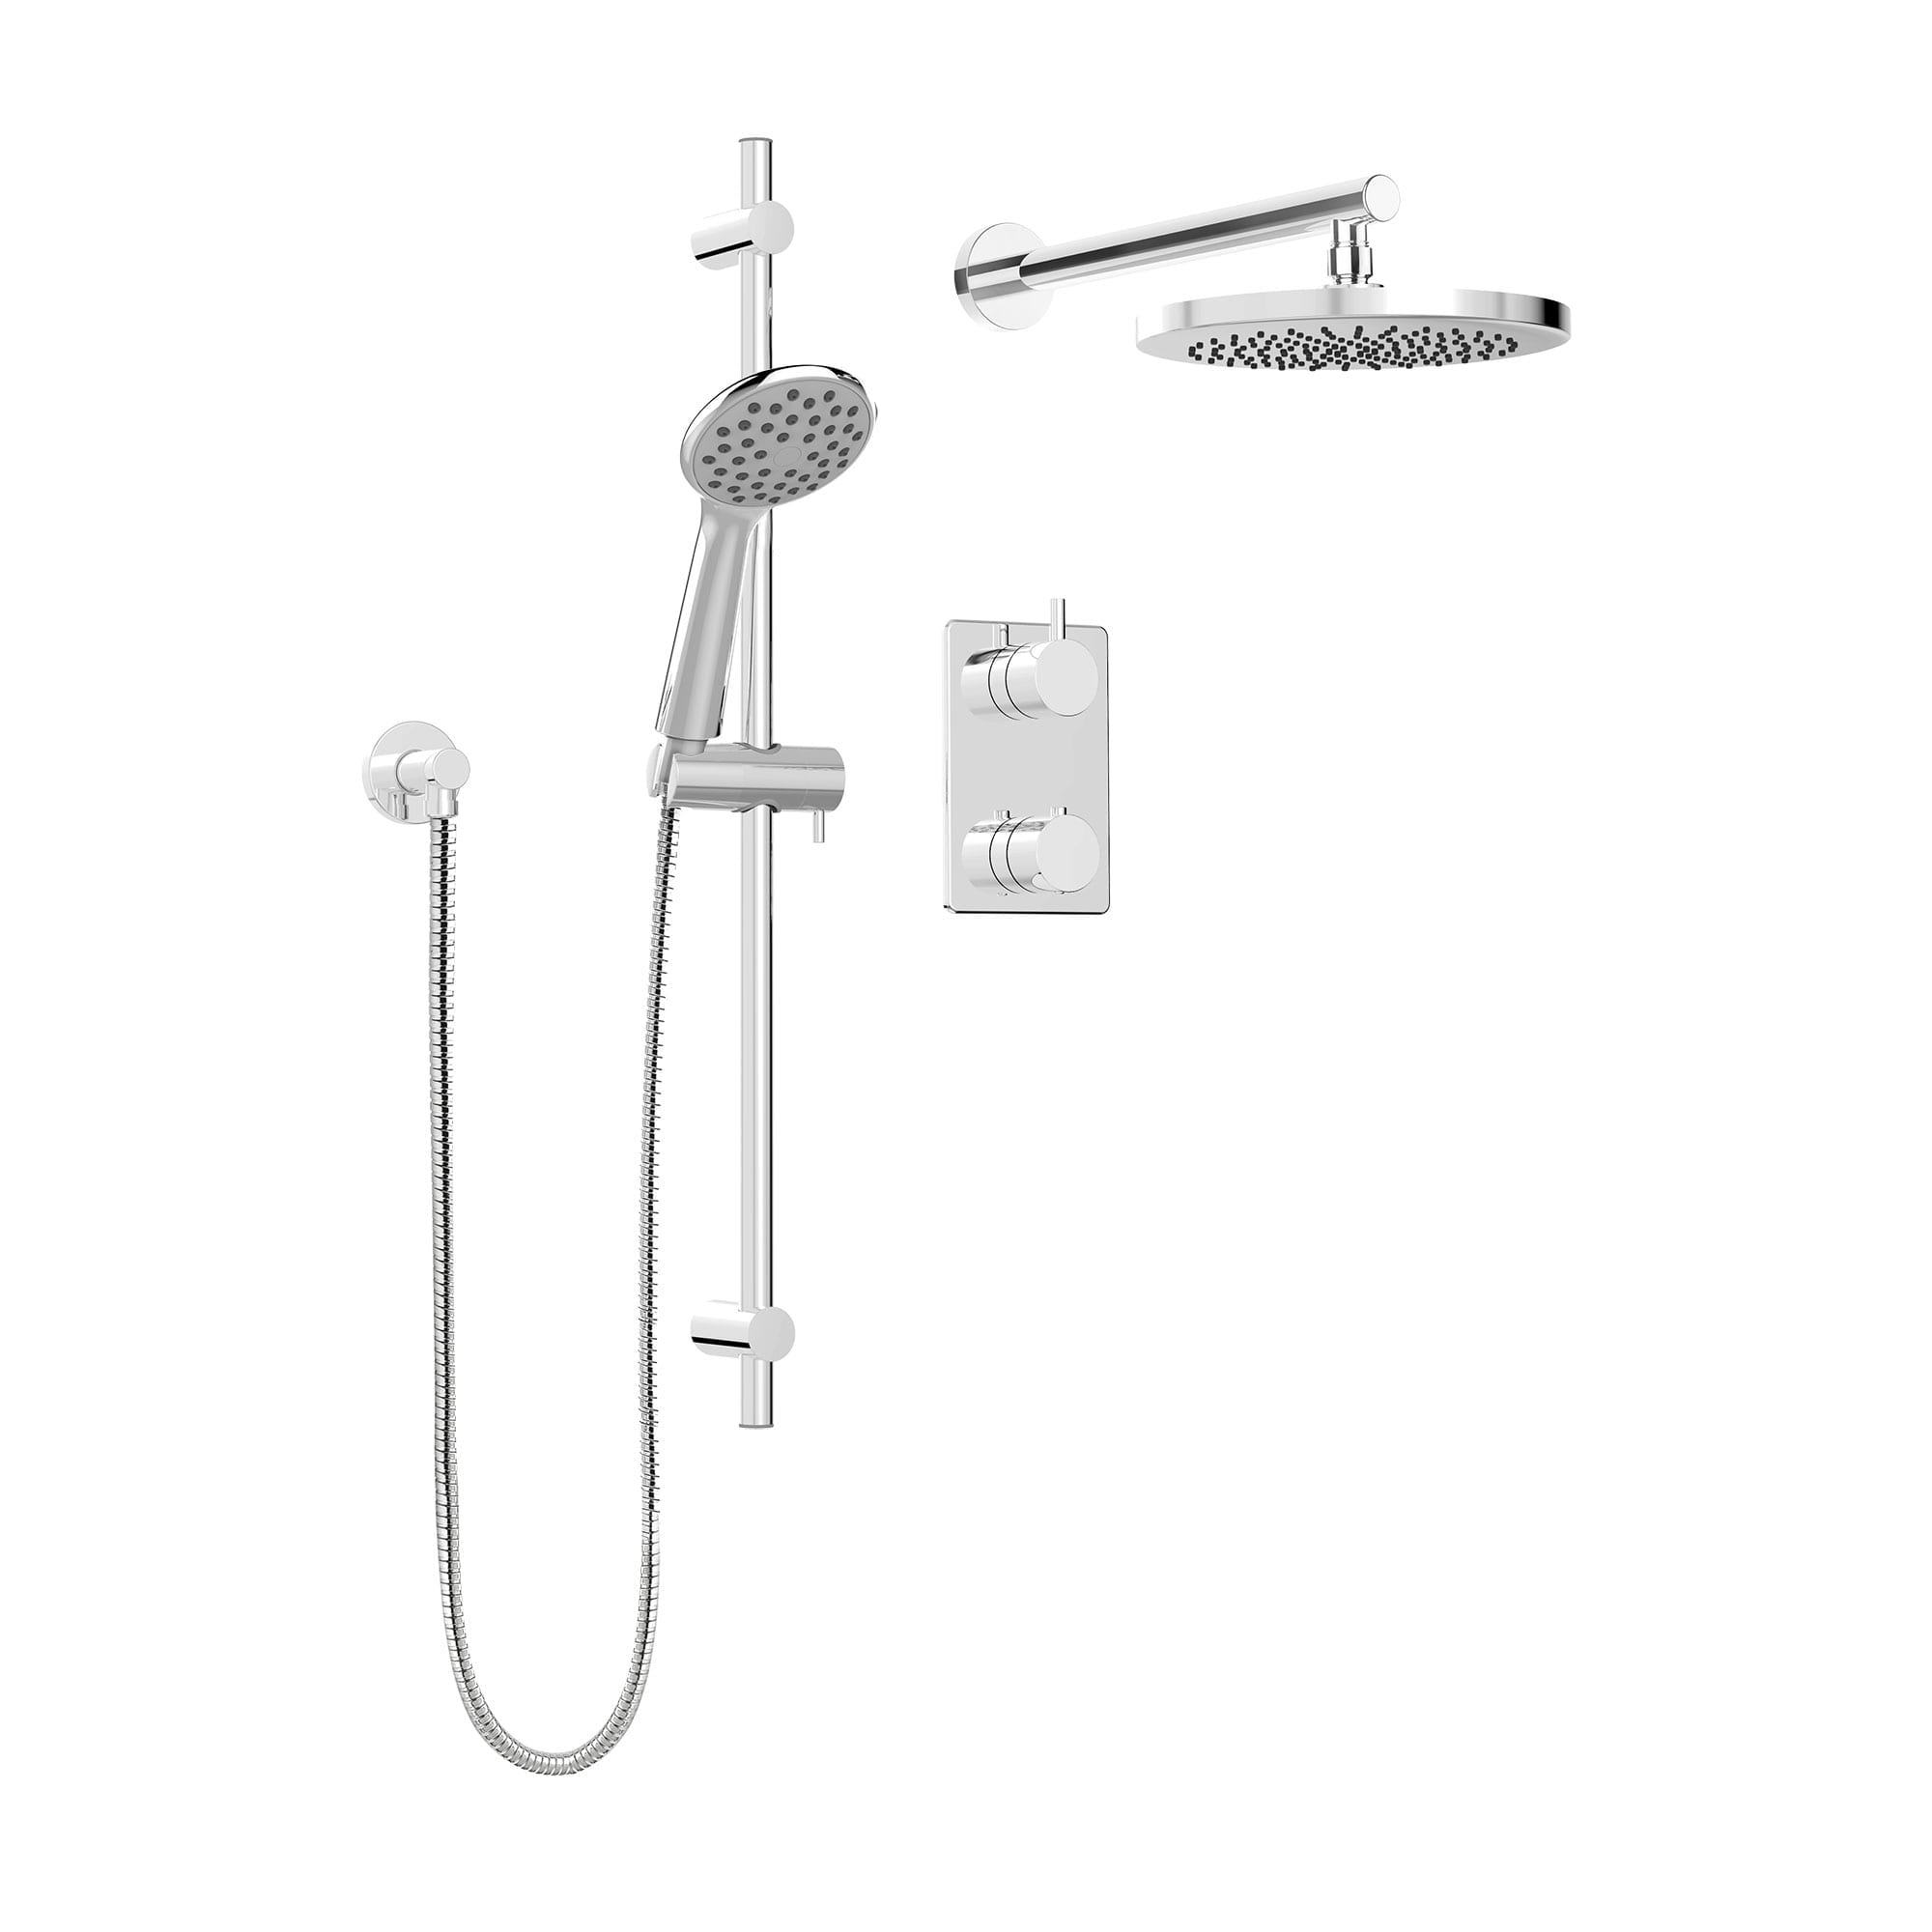 complete shower faucet kits. PCT KIT UNI140TSCP jpg  1 Shower Kits Kit Faucet Complete model for Thermostatic Diverter